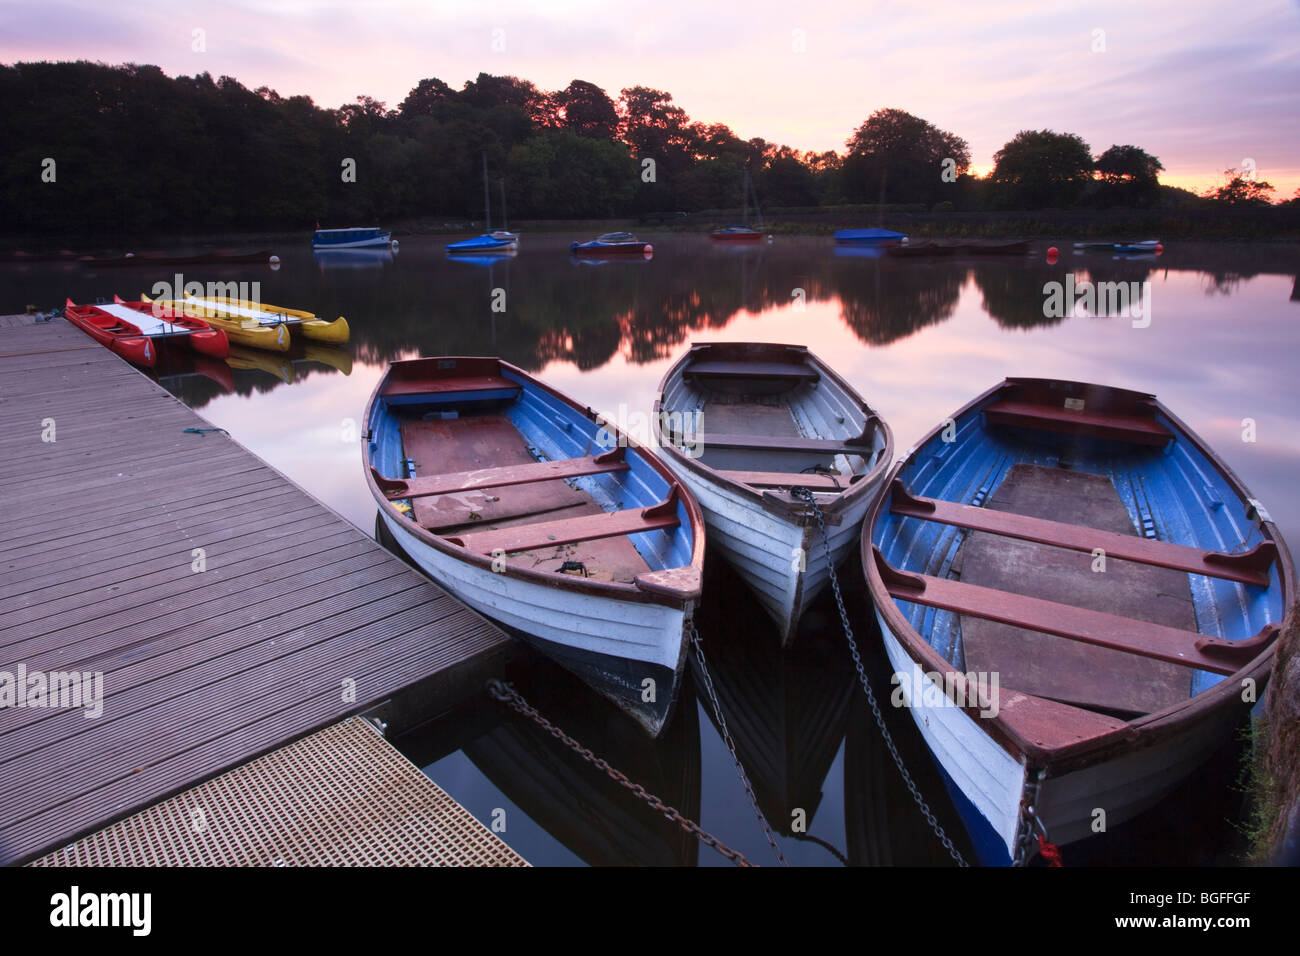 boats lying idle on Rudyard Lake in Staffordshire in the early morning sunrise. - Stock Image